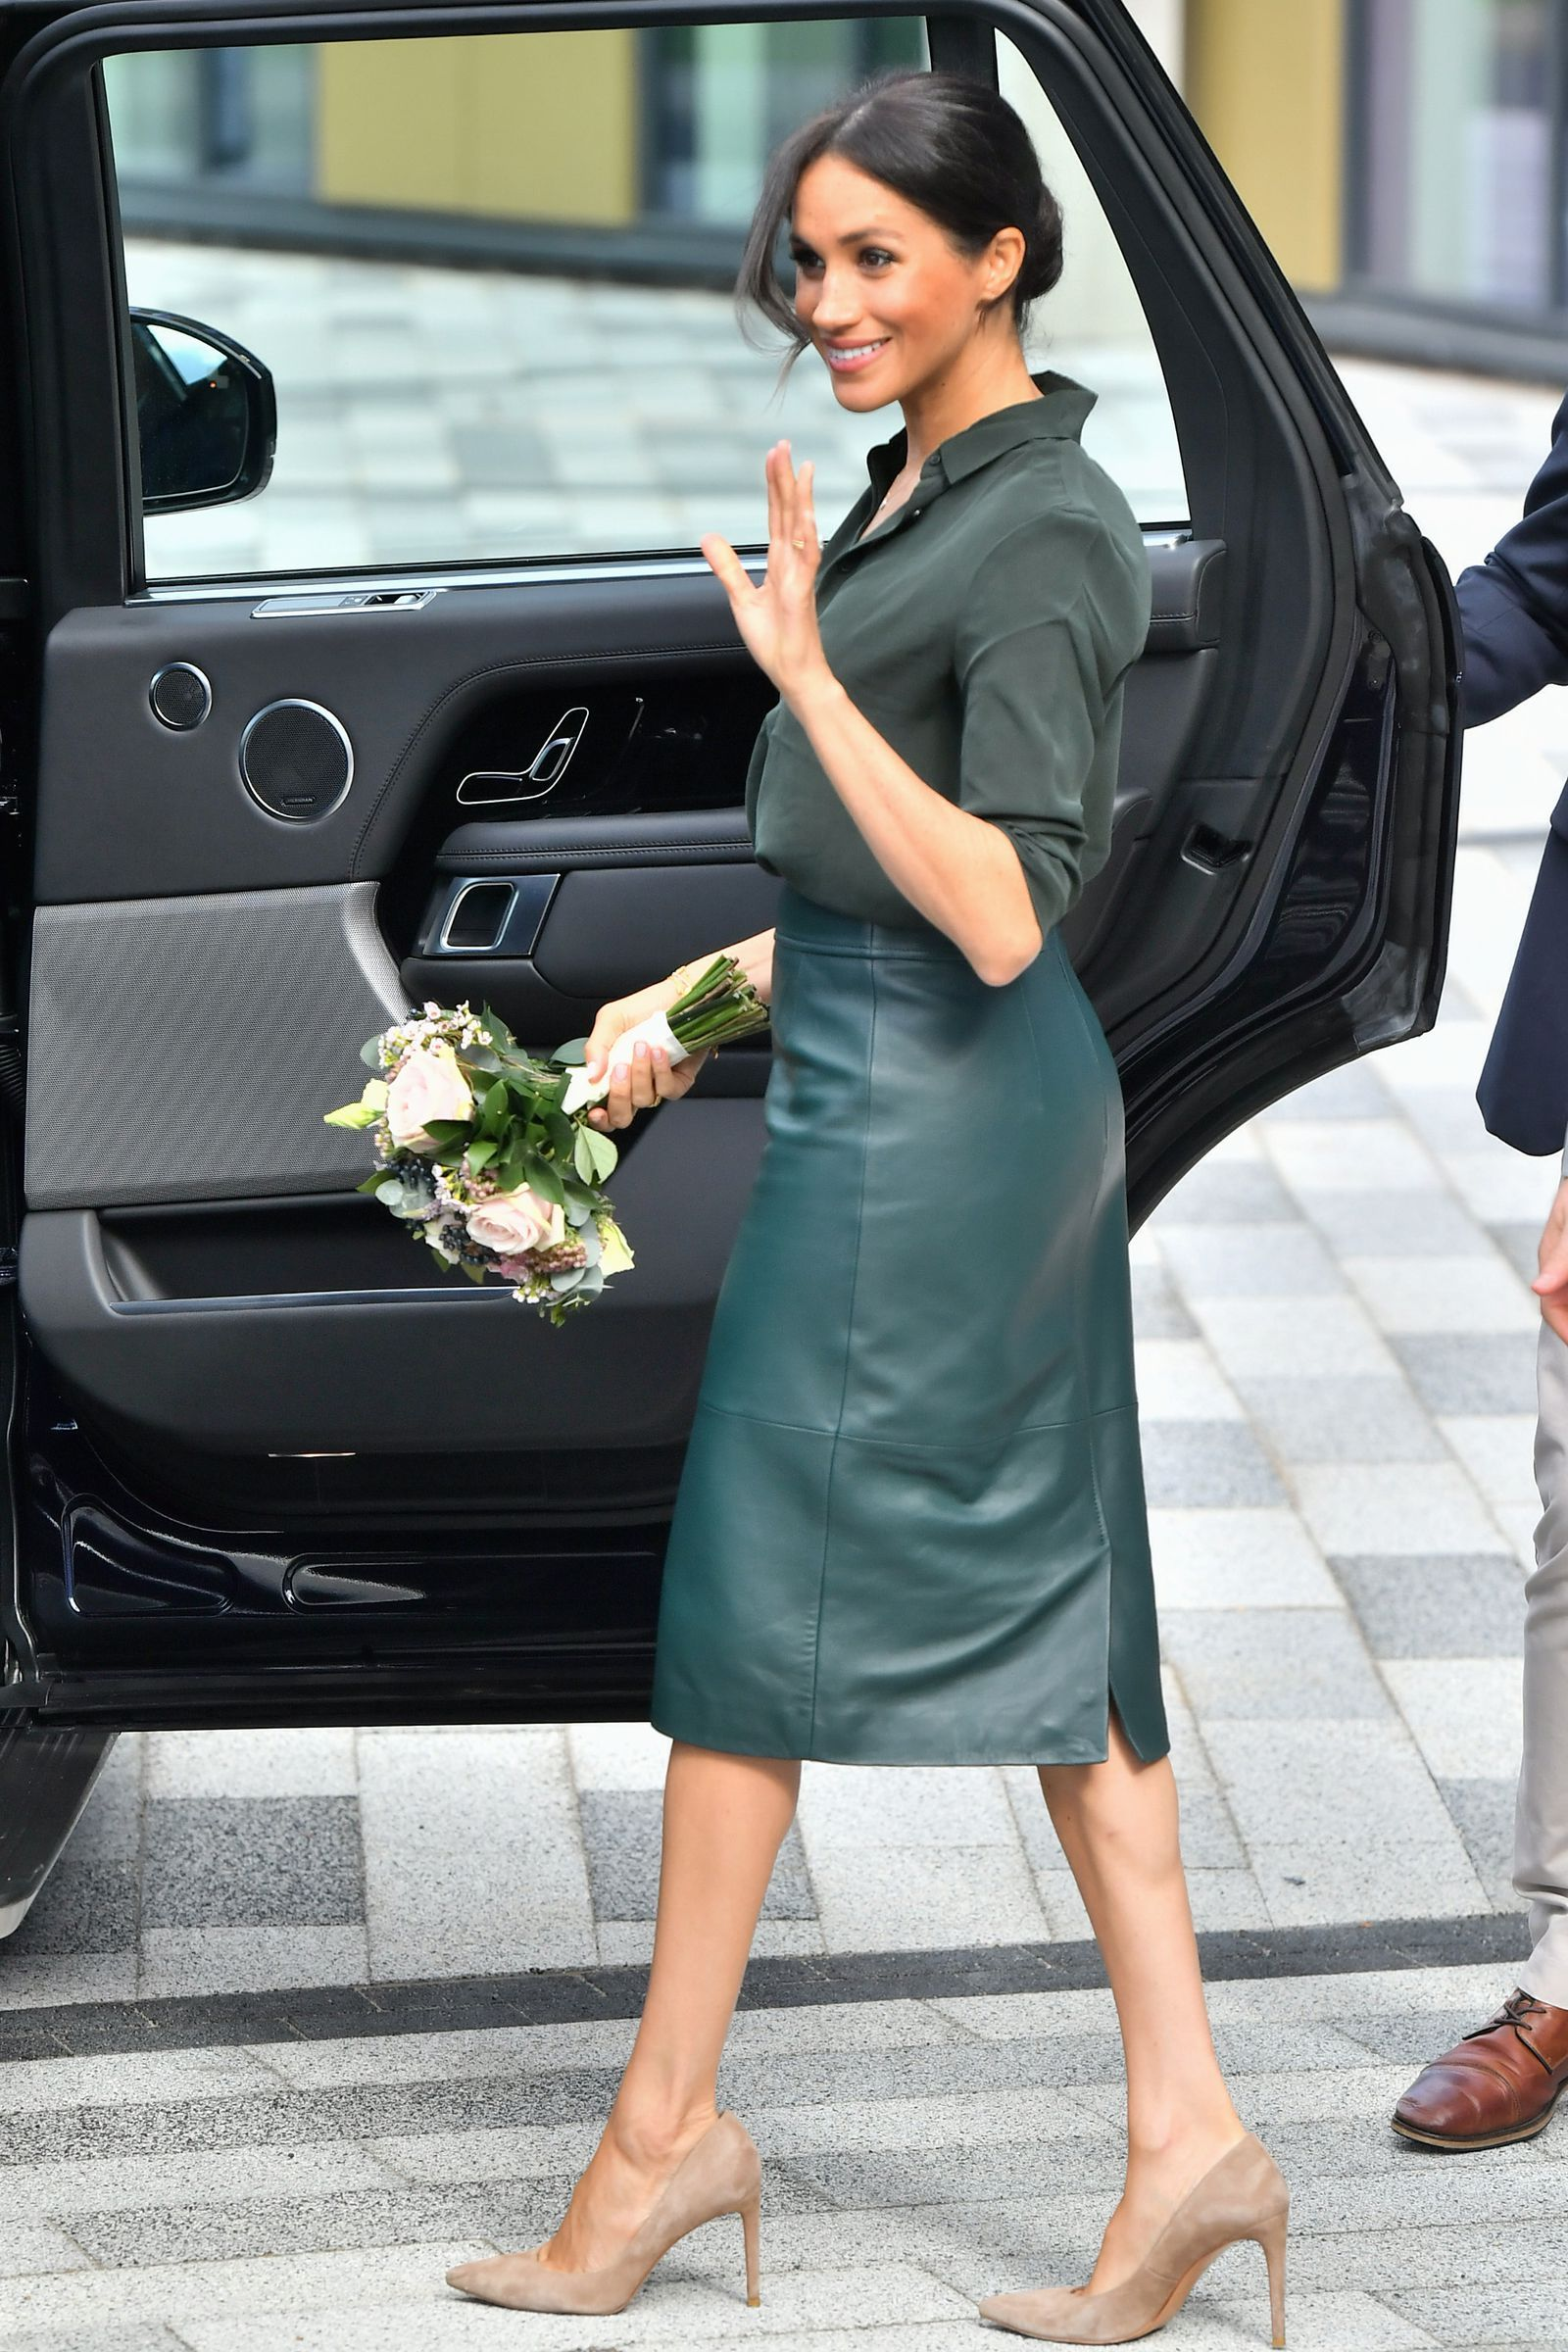 f06c5fa583ec Meghan Markle Just Arrived in Sussex Wearing a Green Leather Pencil Skirt-  TownandCountrymag.com